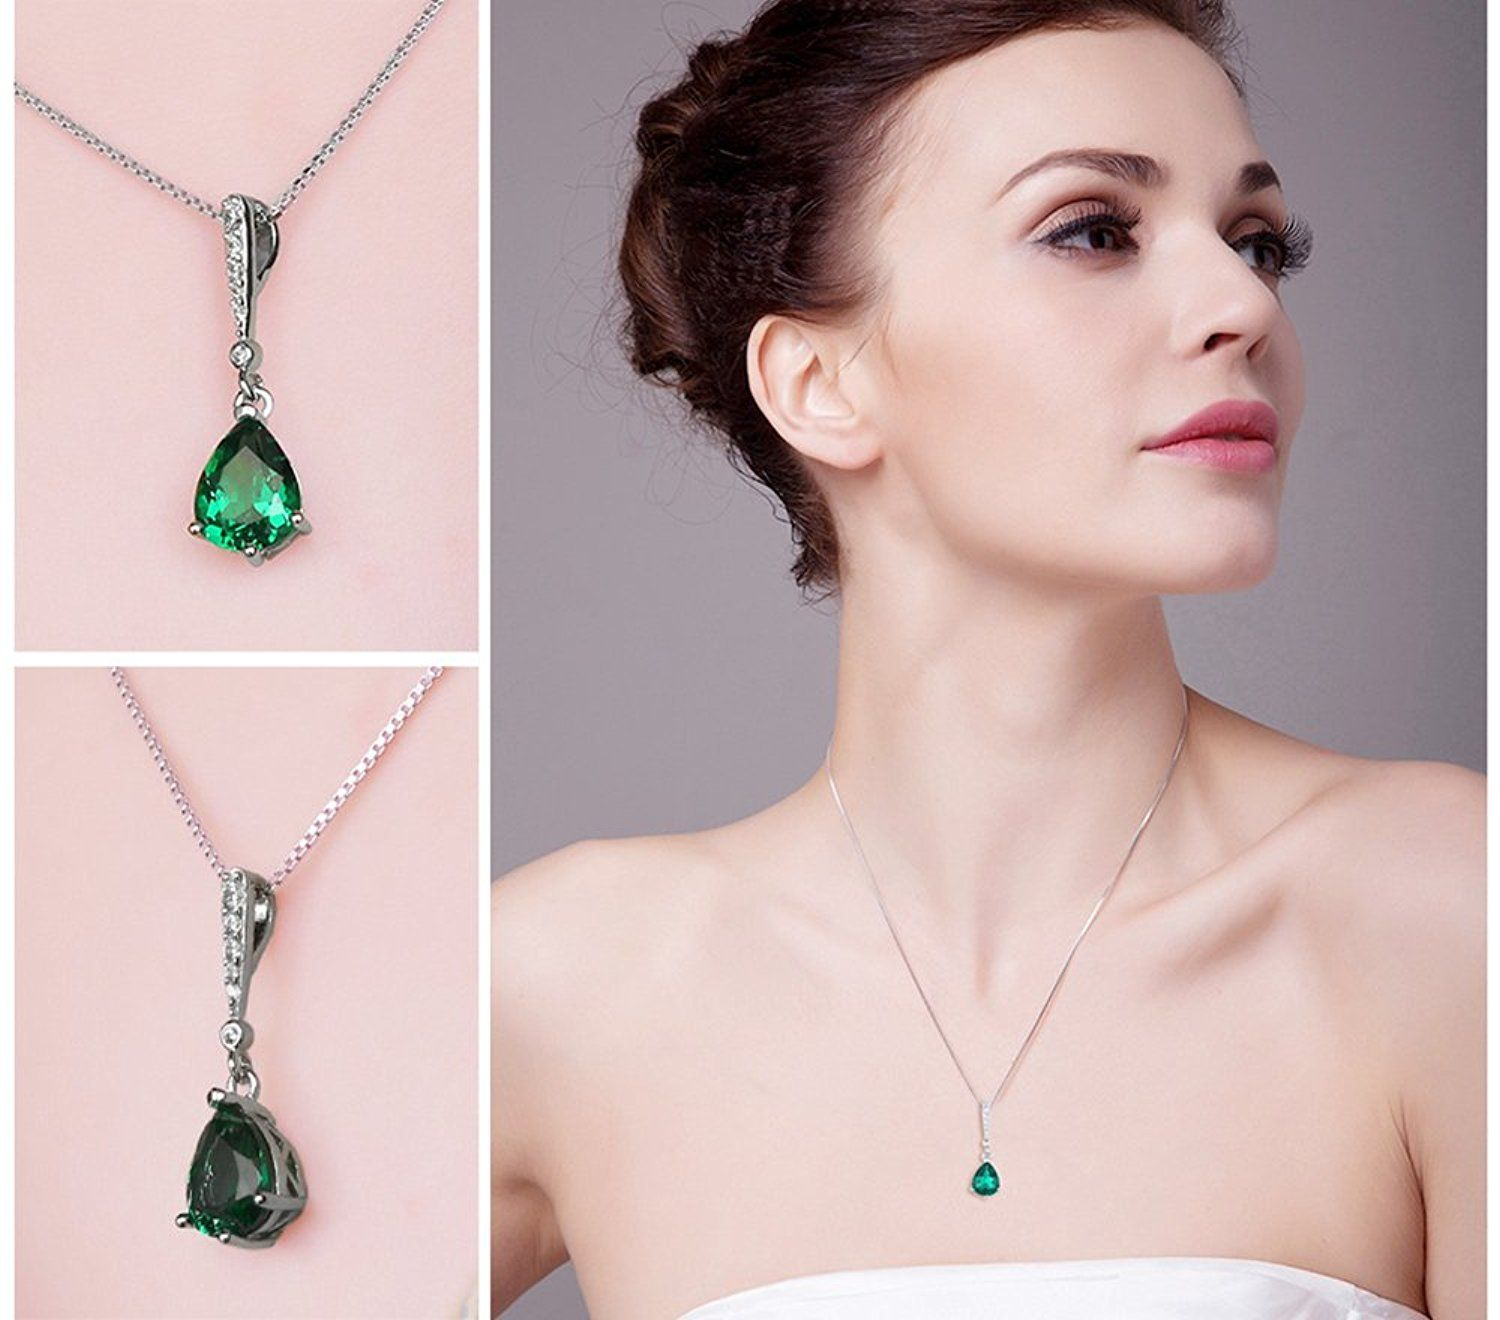 JewelryPalace Fashion 0.7ct Nano Russian Simulated Emerald Pendant Necklace 925 Sterling Silver 18 Inches 9IqyD8AluT